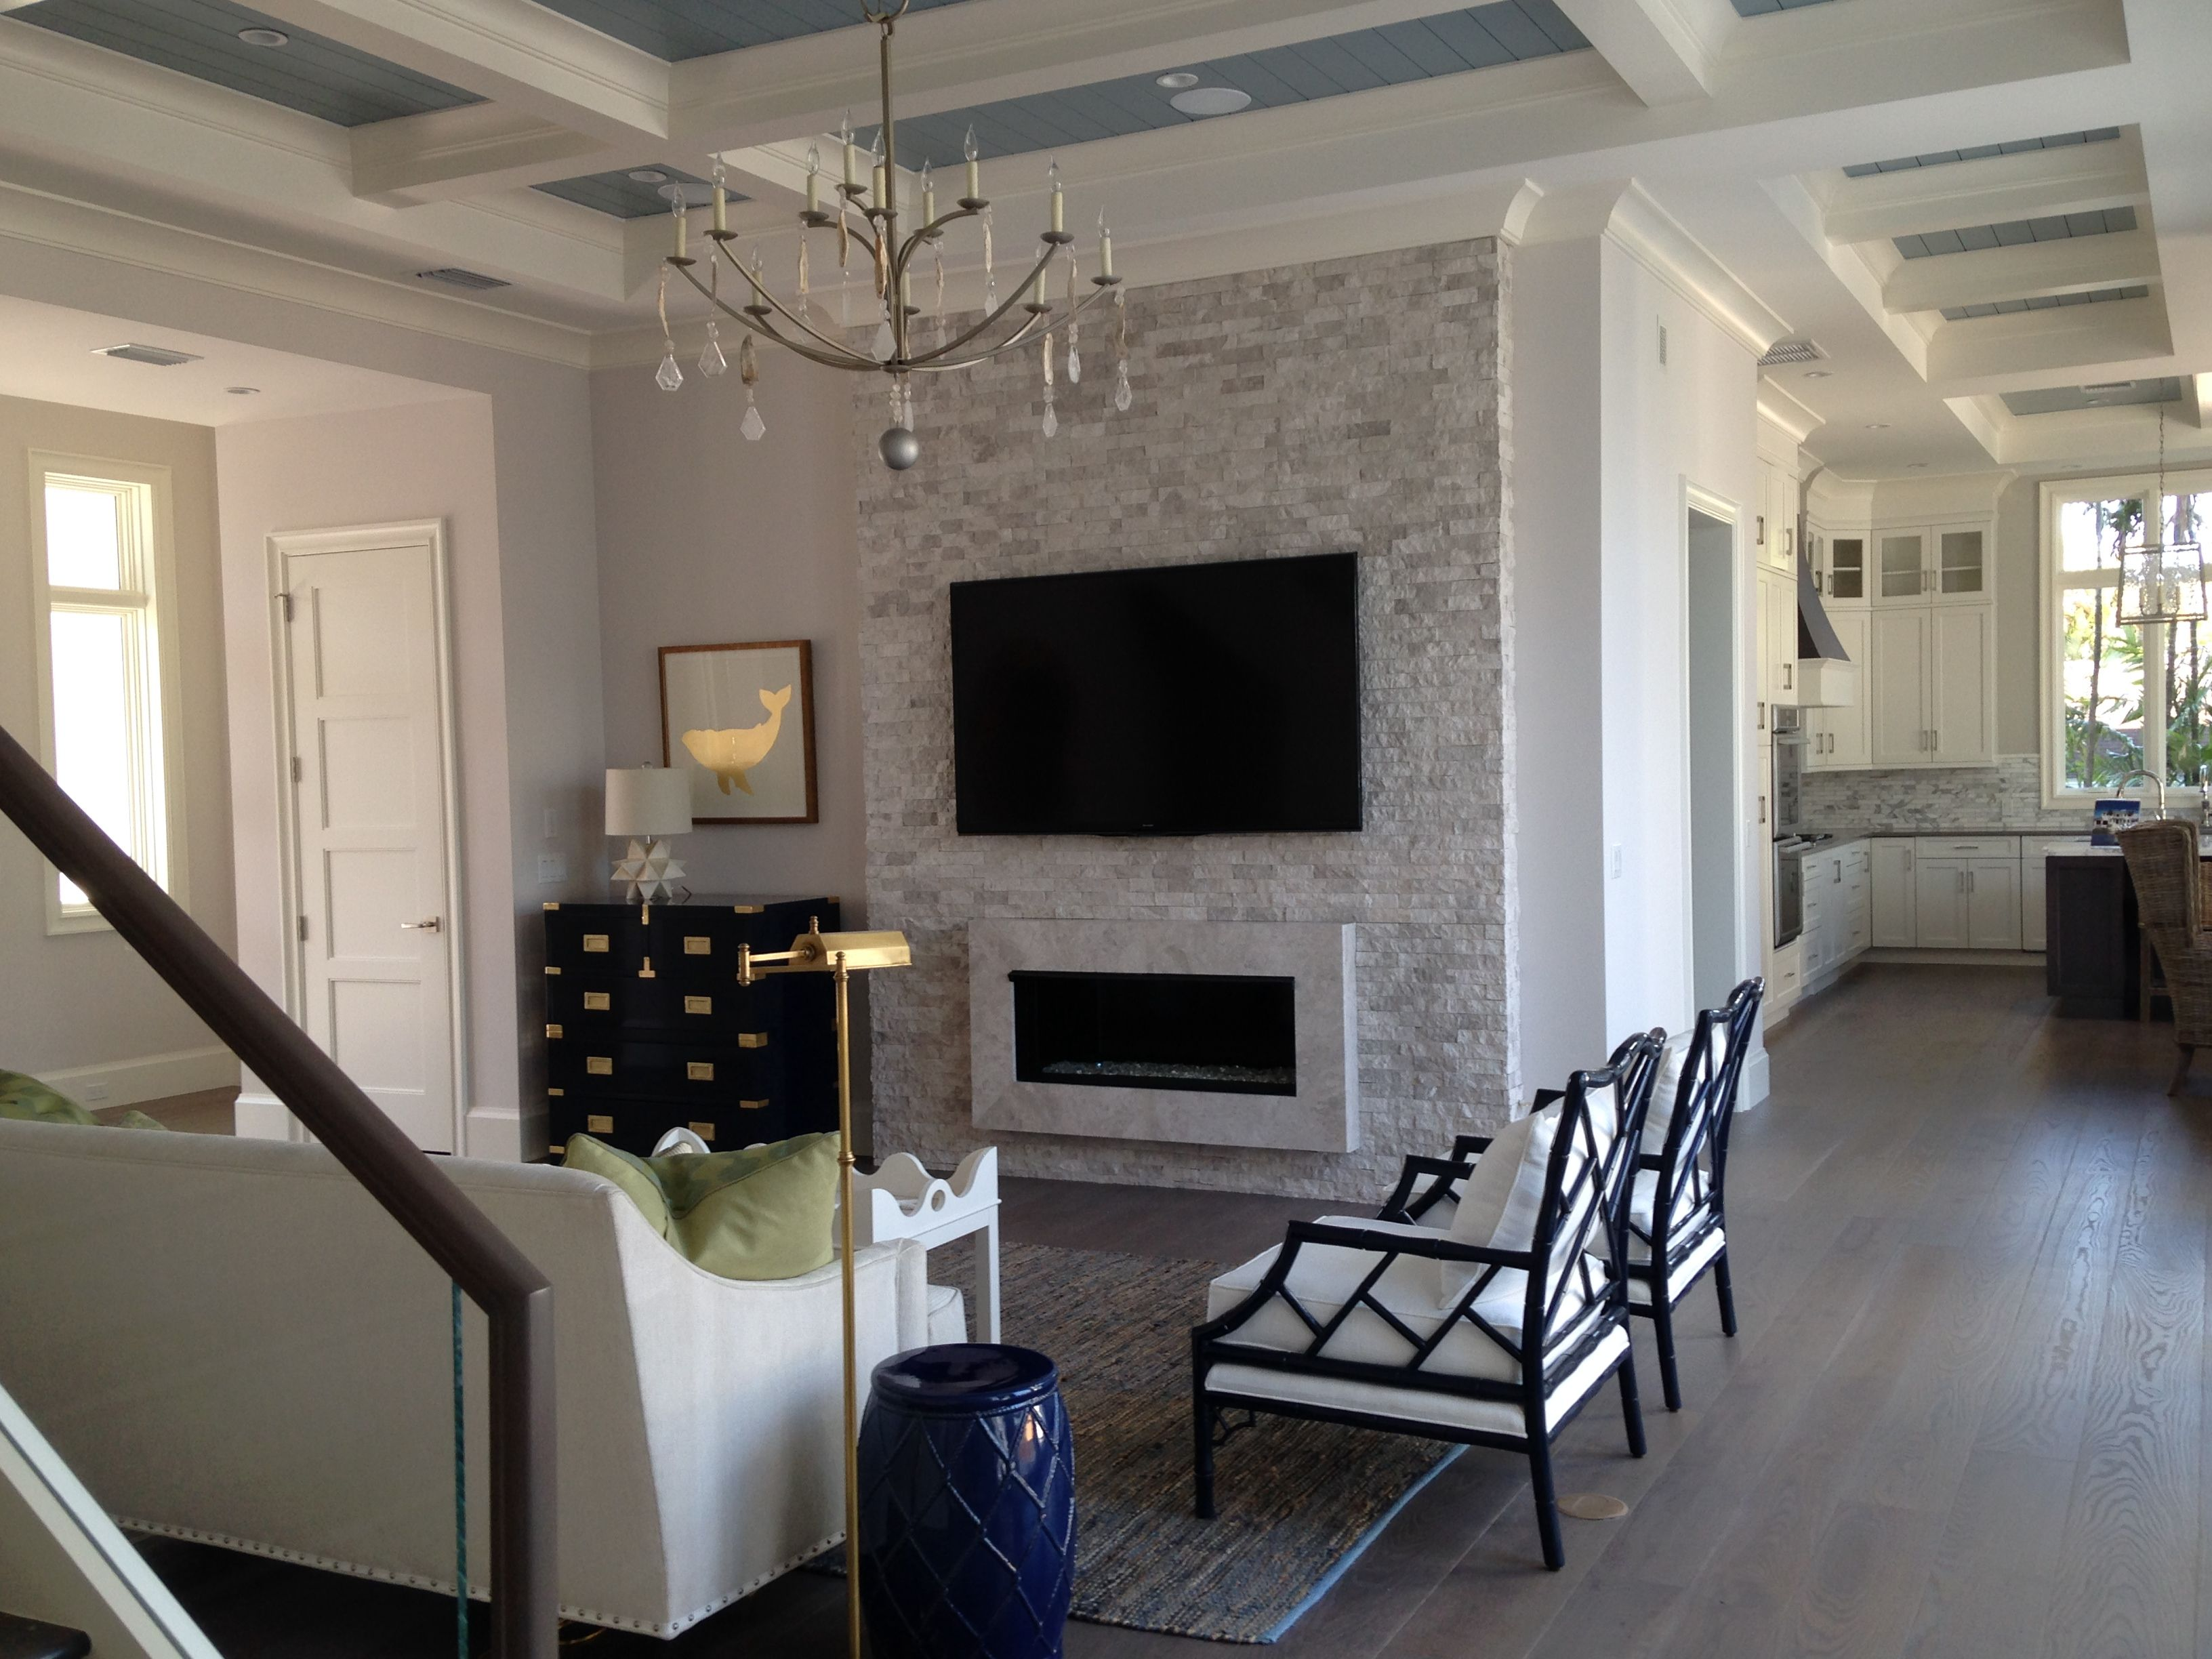 We Love This Beach House In Naples Fl That Features Several Of Our Lighting Fixtures Sand Dollar Design Inc Florida